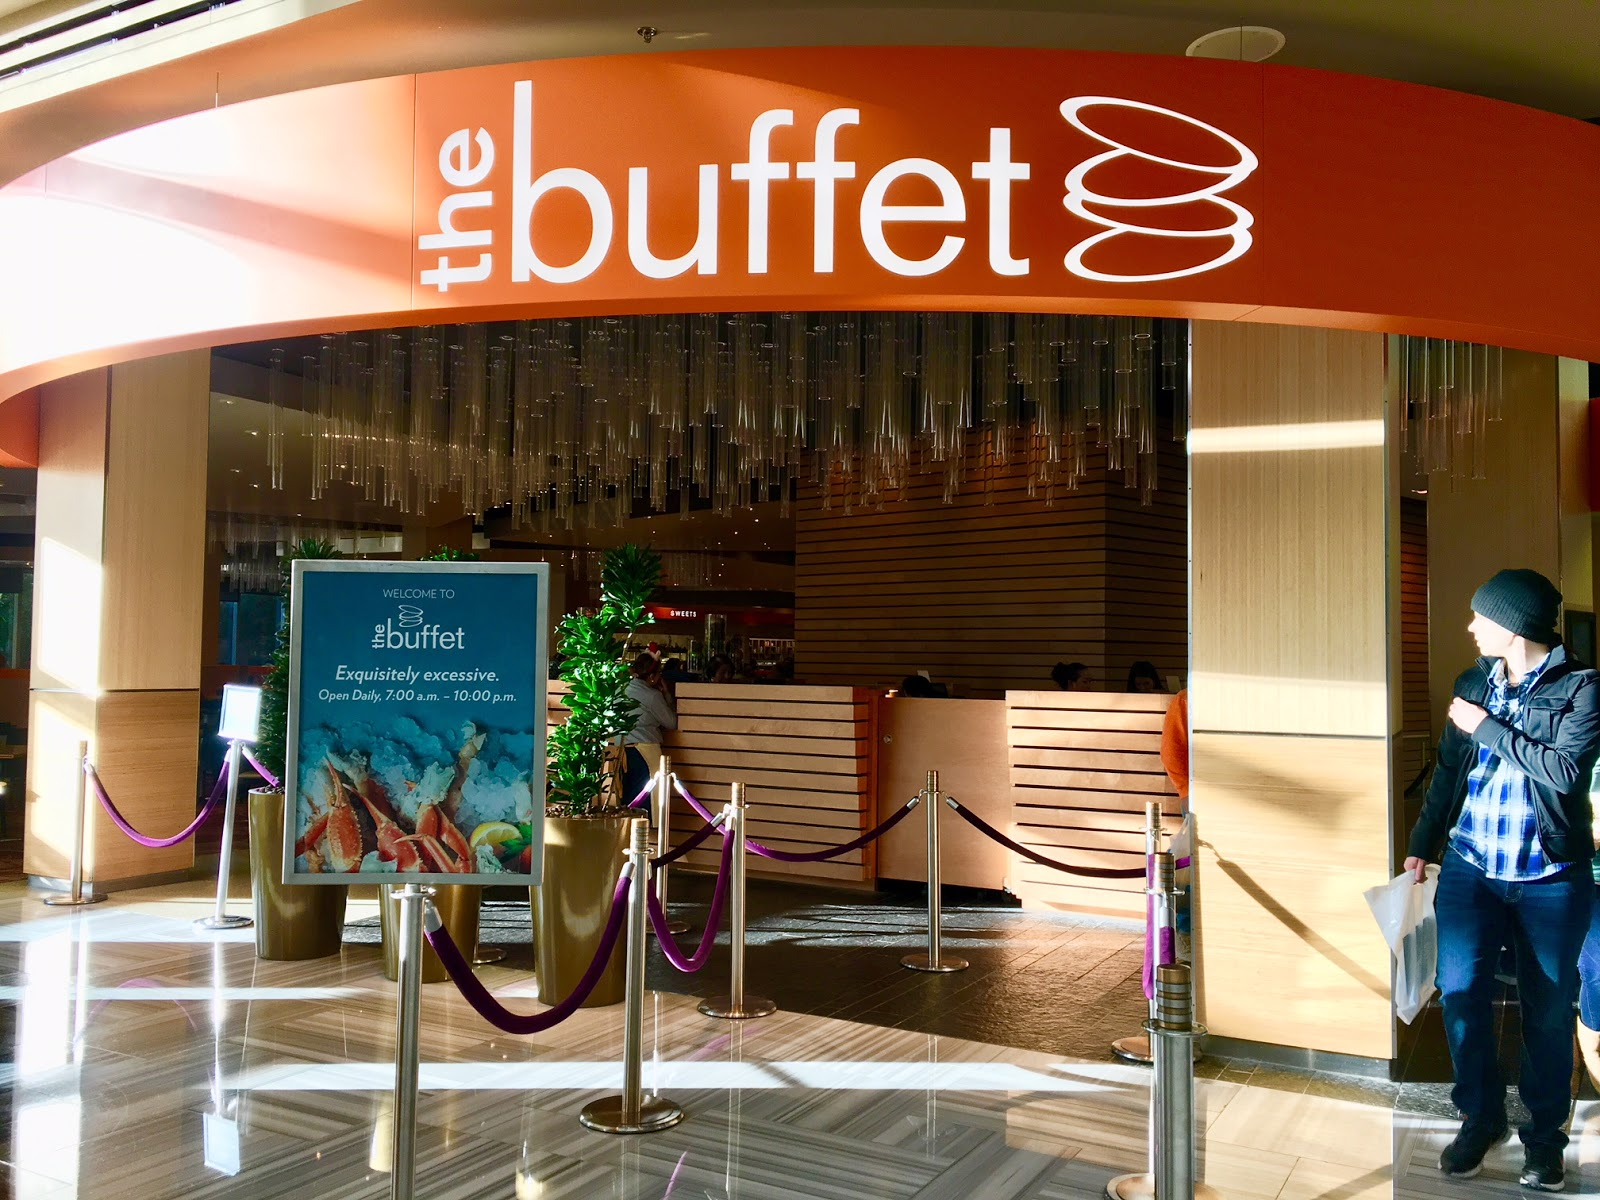 Best Buffets in Vegas - The Buffet at ARIA